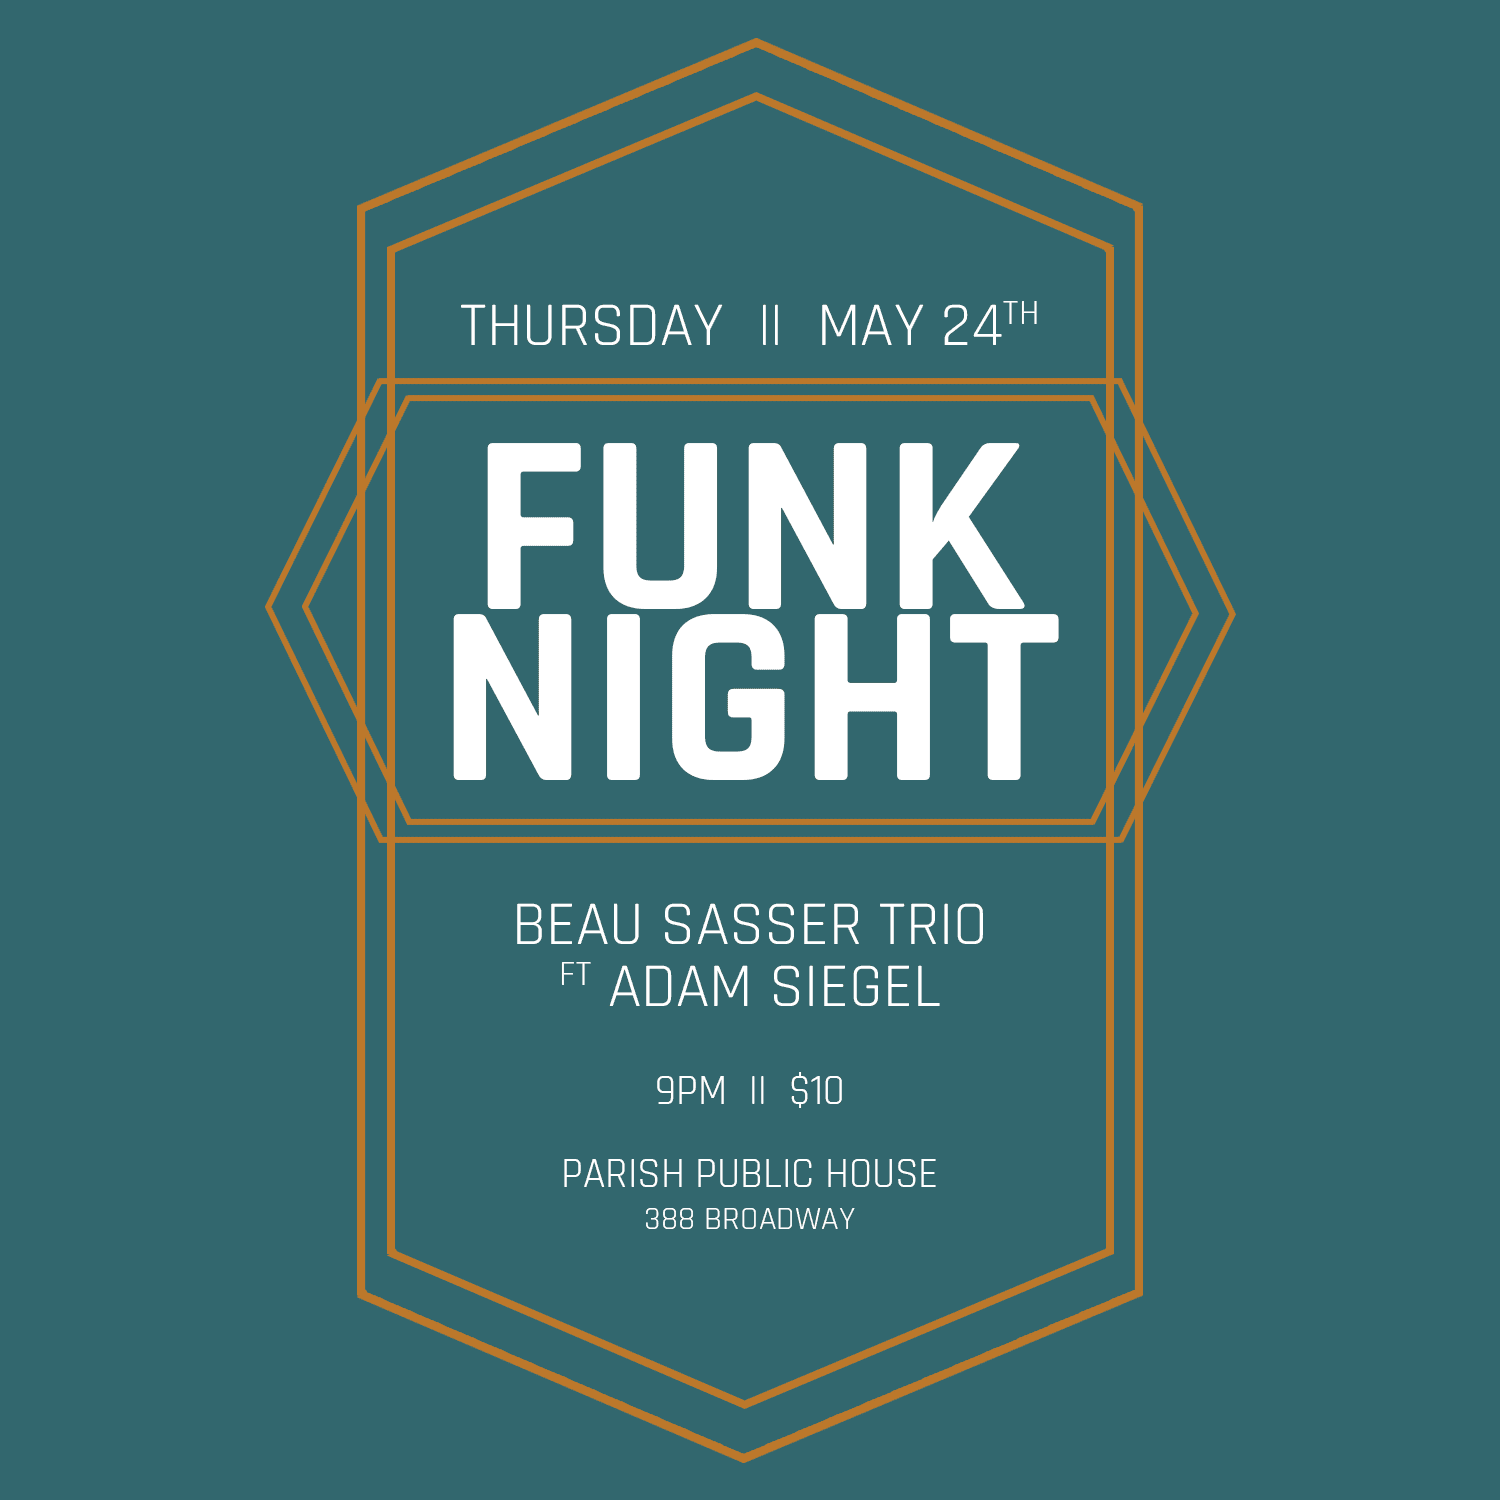 Beau Sasser Trio to host Funk Night in Albany on May 24 | Utter Buzz!